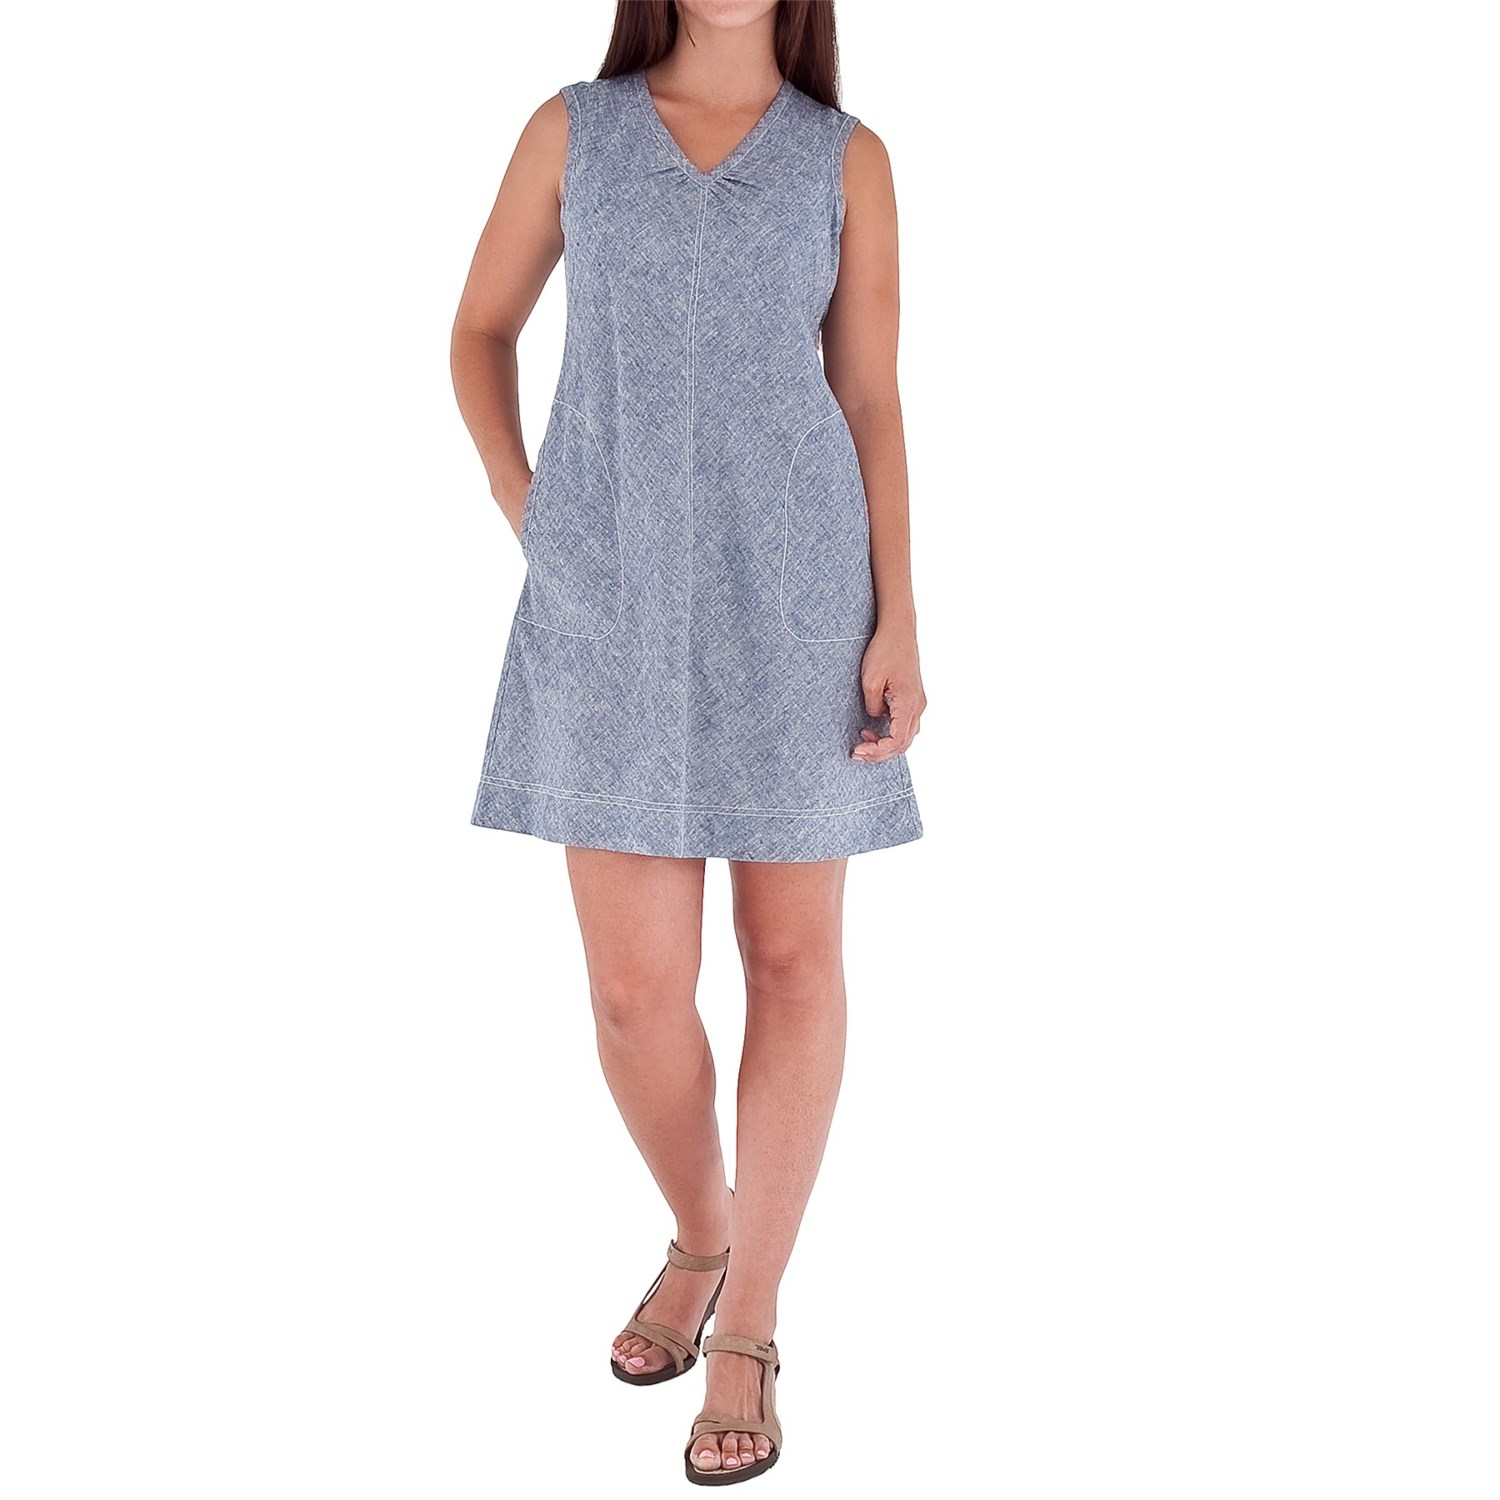 Royal robbins chambray summertime dress for women save 52 for Chambray dress